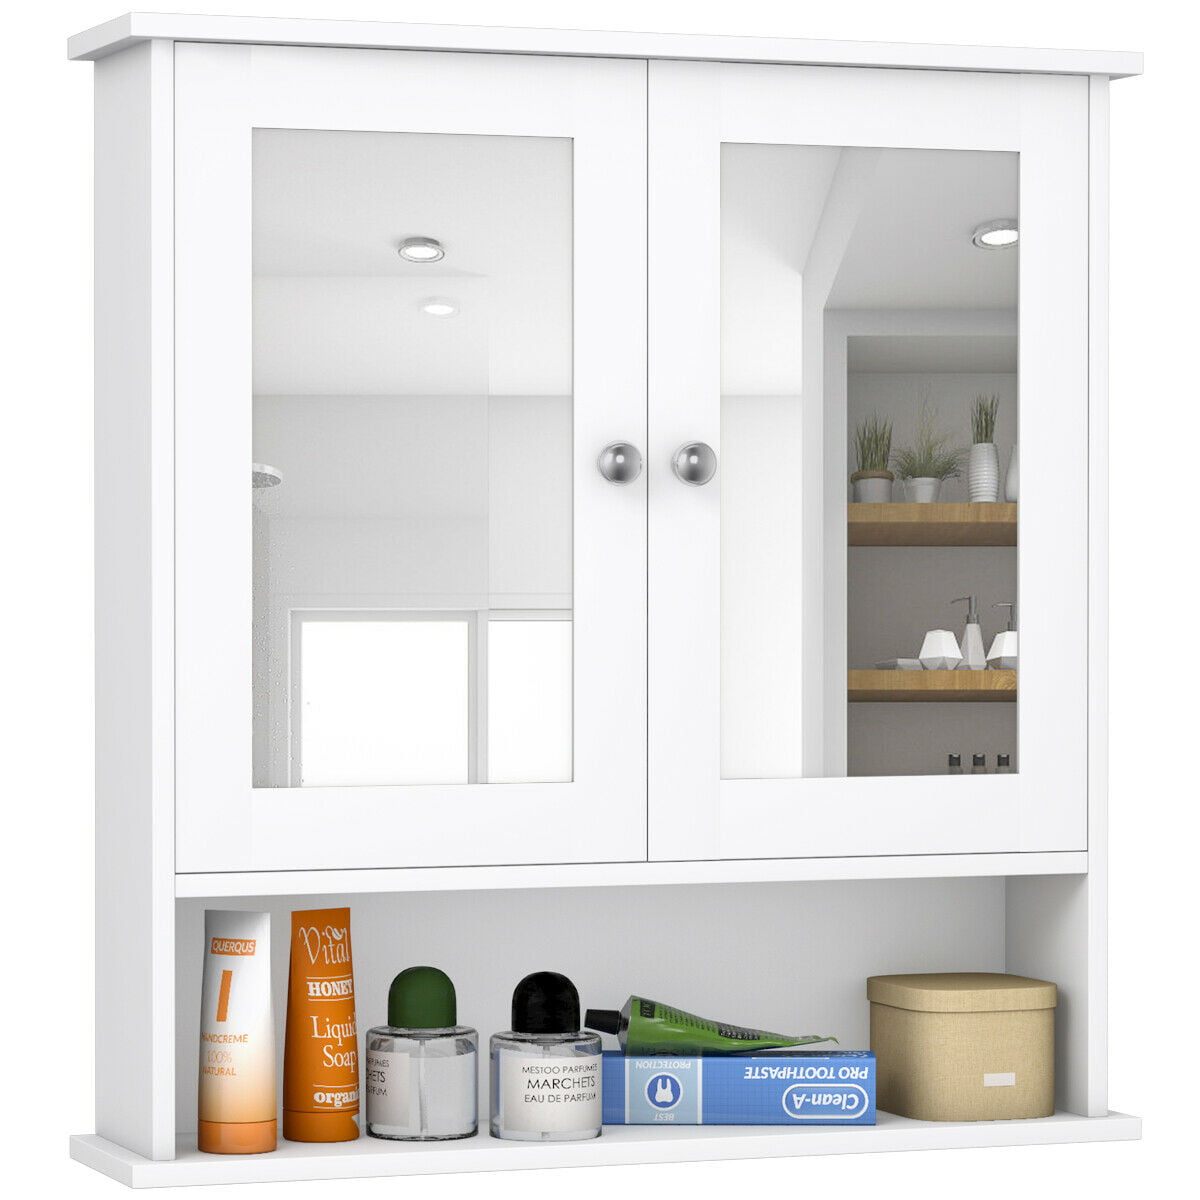 Costway New Bathroom Wall Cabinet Double Mirror Door Cupboard Storage Wood Shelf White Walmart Com Walmart Com